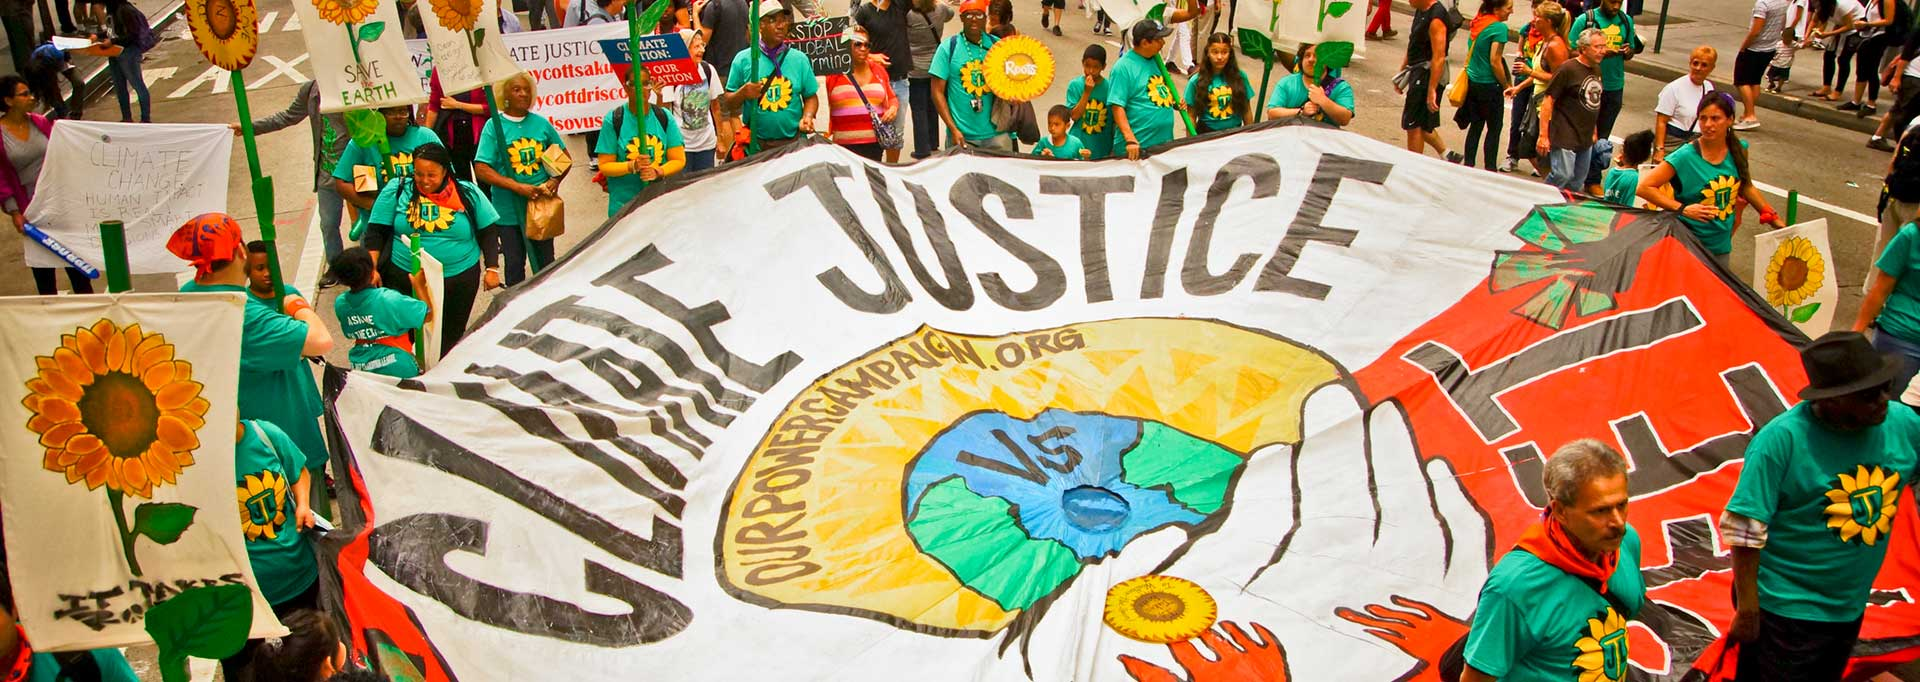 The Many Faces of Climate Justice: Exploring the Principles of Climate Justice  via Mary Robinson Foundation